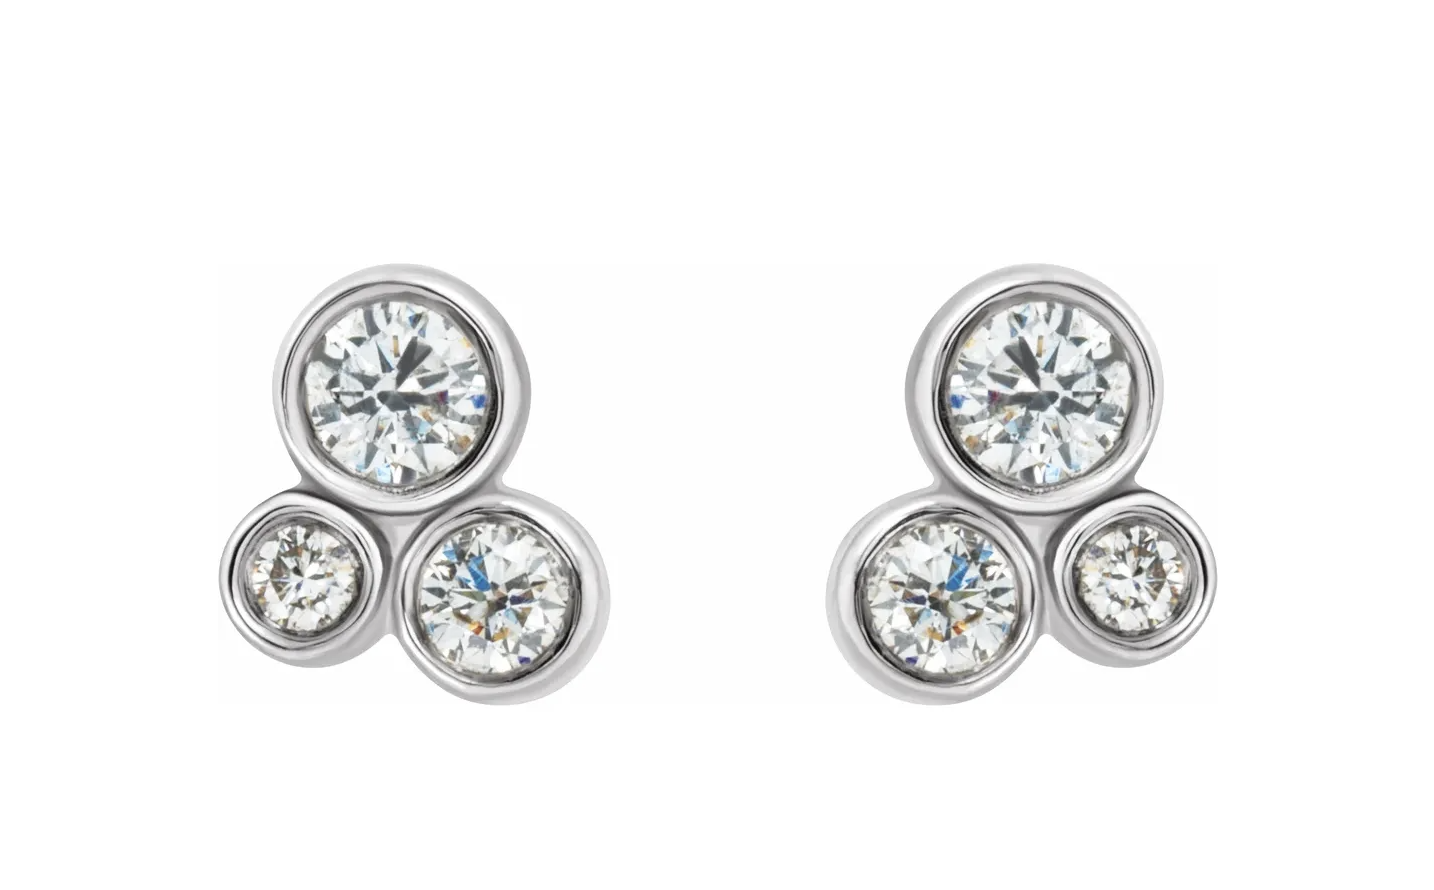 Stuller 86752 Cluster Diamond Earrings 1/5 carat total